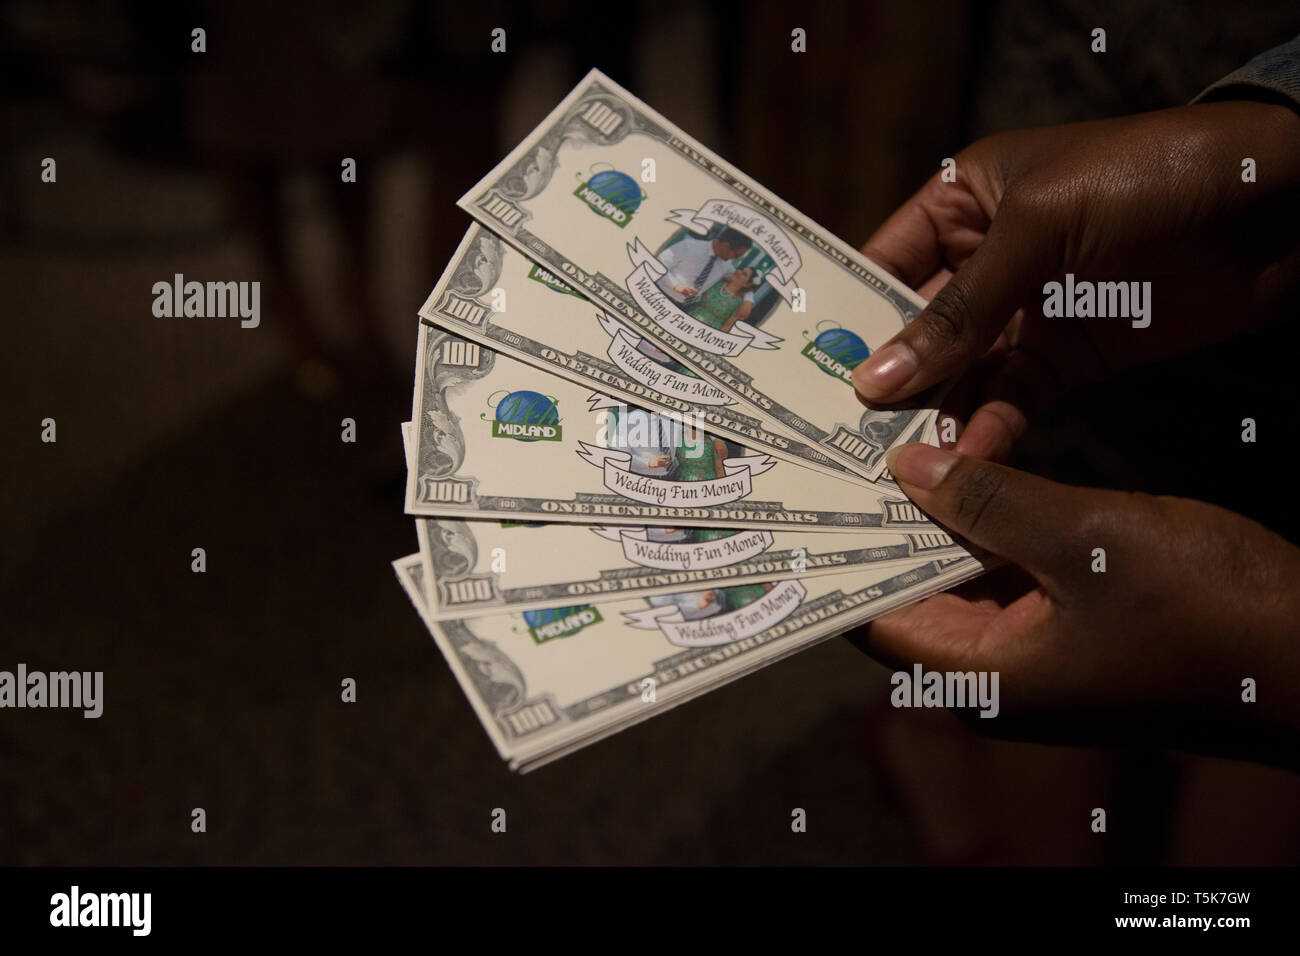 Casino money at a wedding ready to be used for a fun casino night by party goers - Stock Image